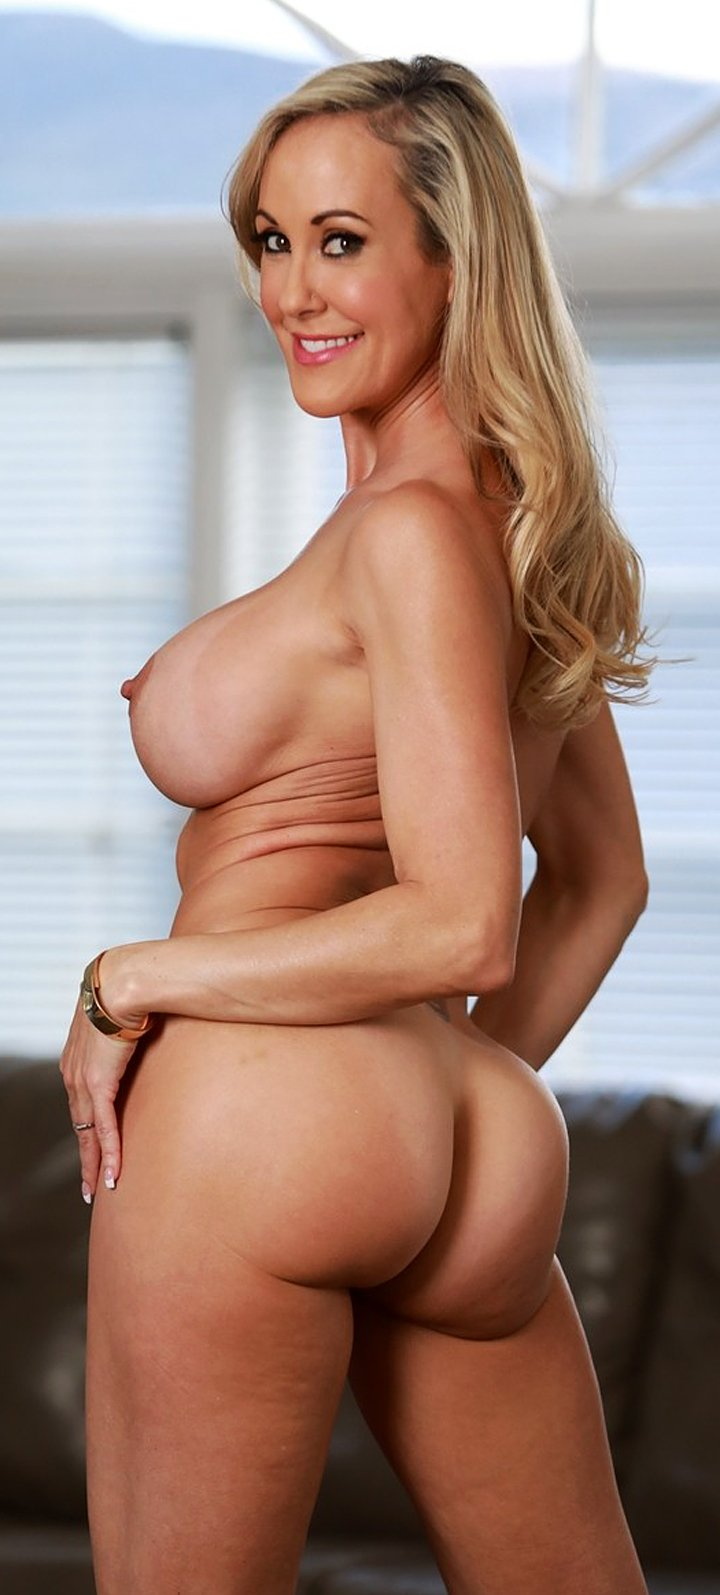 Busty mom Brandi Love exposing the incredible curves of her body